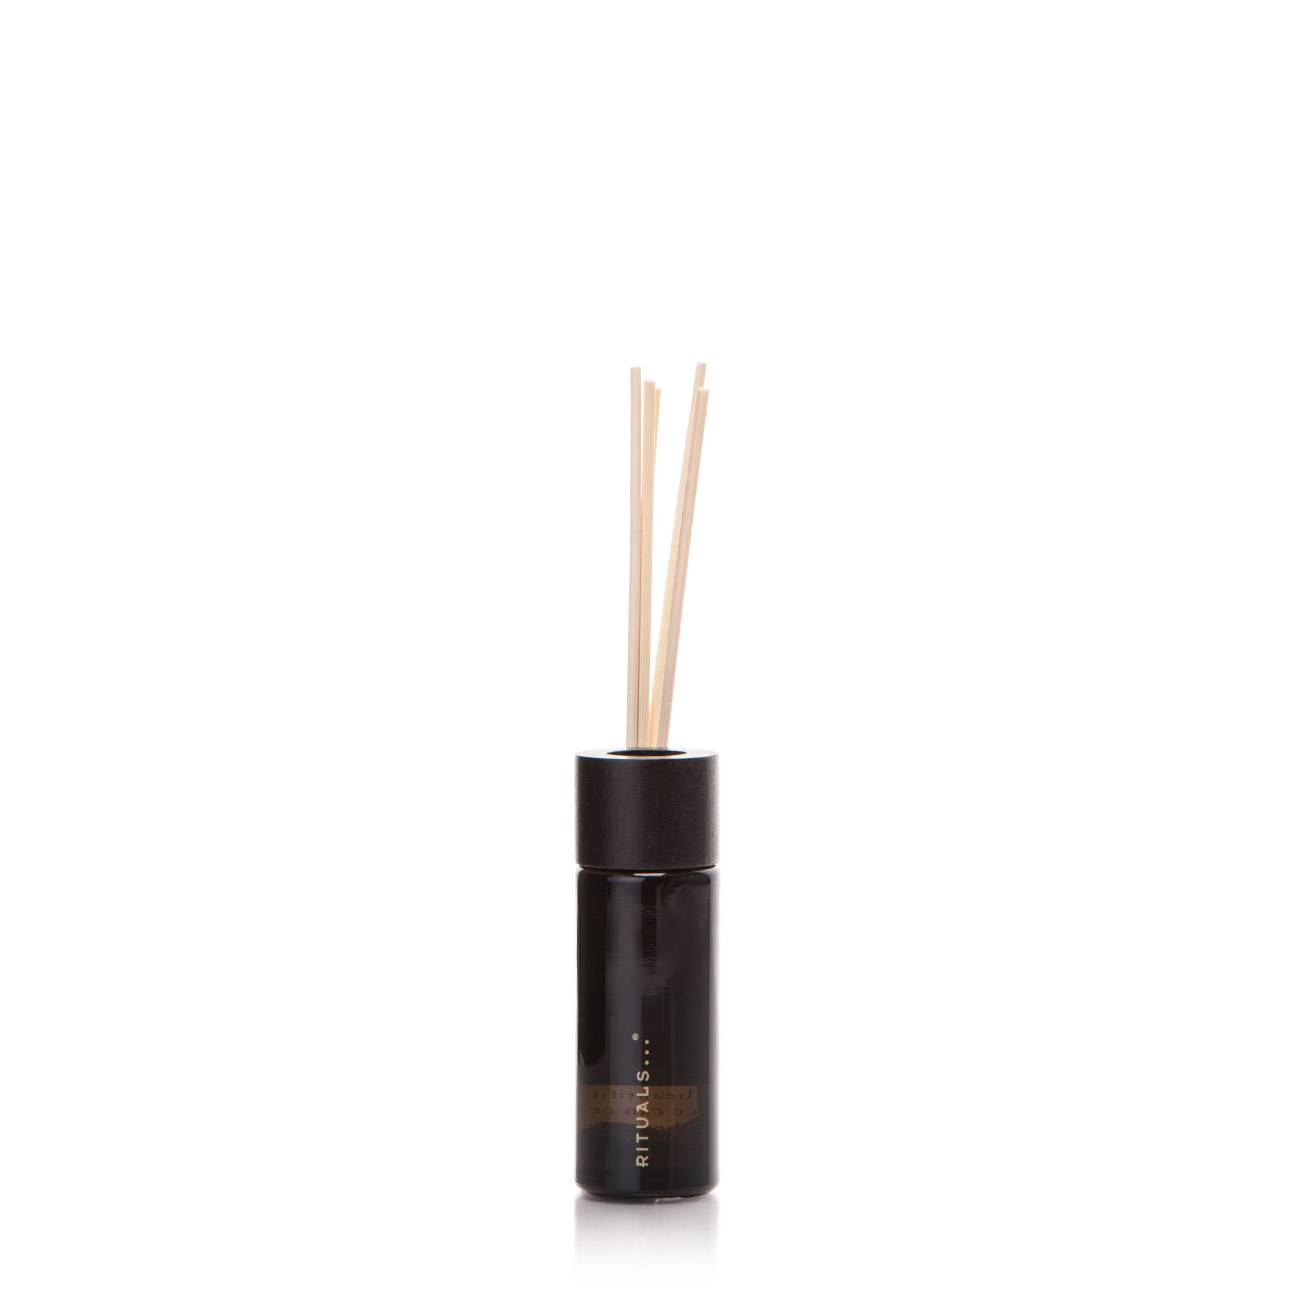 LAUGHING BUDDHA MINI STICKS 50 Grame poza noua